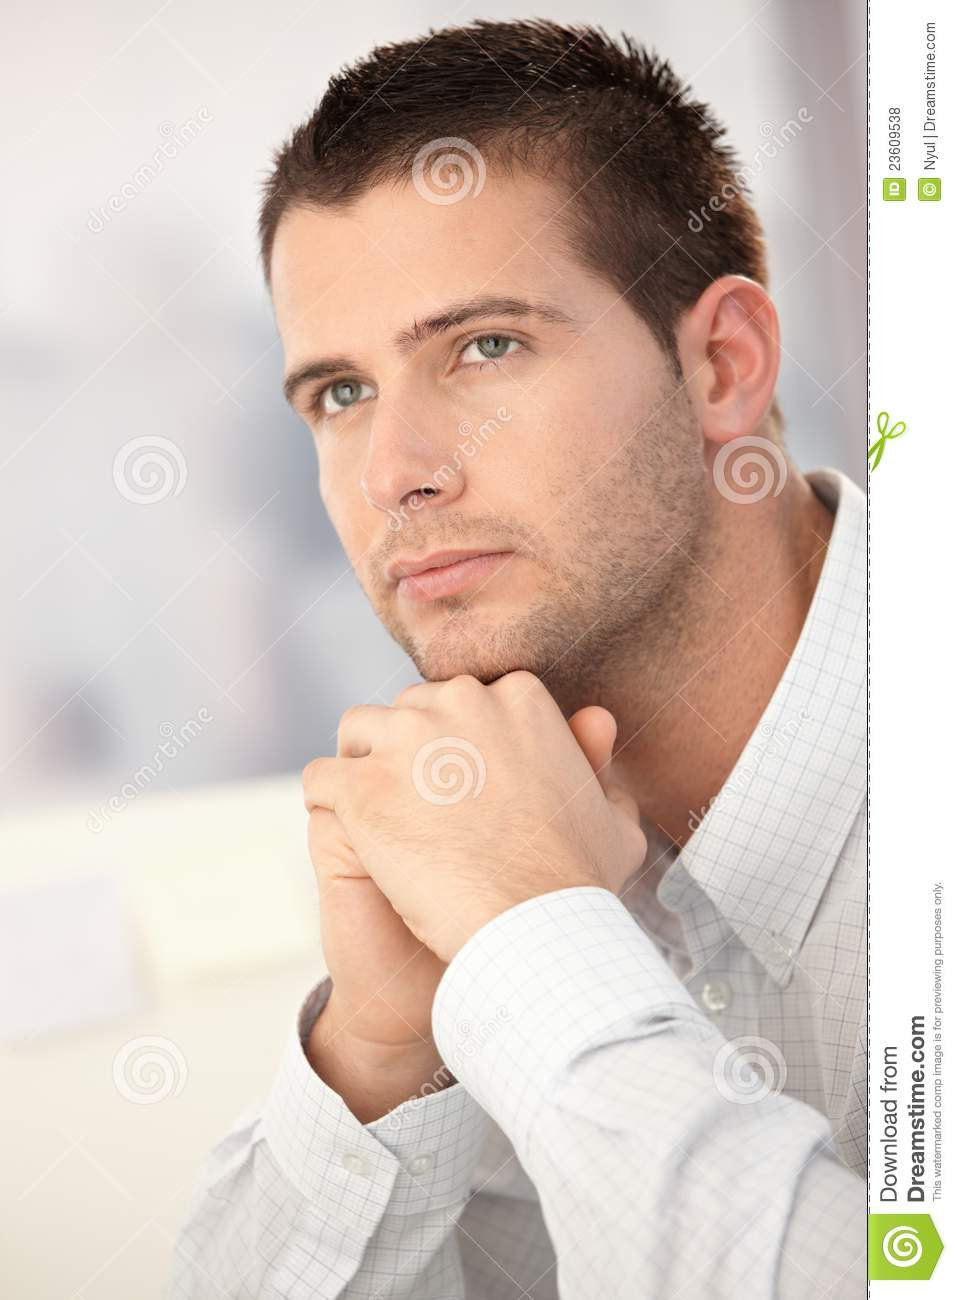 Portrait Of Goodlooking Young Man Stock Photo - Image of ...  Good Looking Young Man